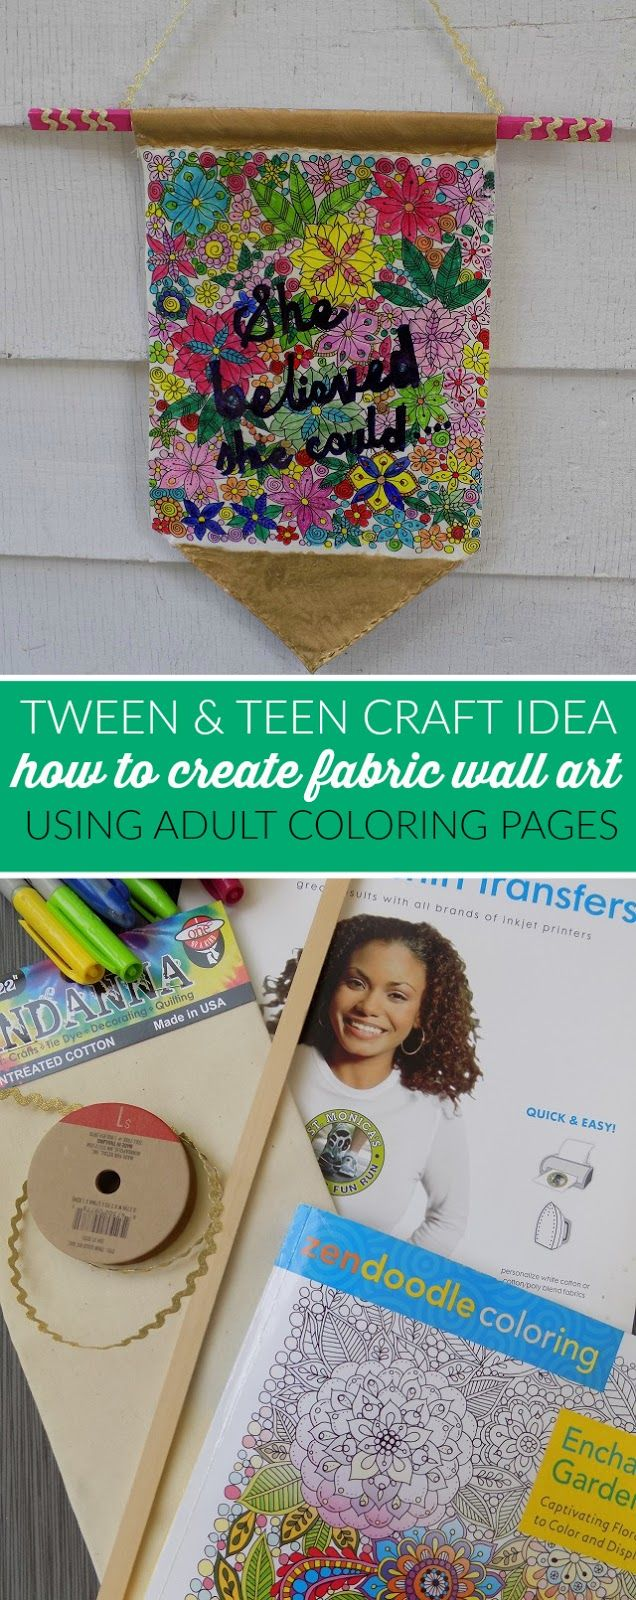 How To Create Fabric Wall Art Using Adult Coloring Book Pages and Free Printable Adult Coloring Pages - Fun Tween & Teen Summer DIY Craft Idea!